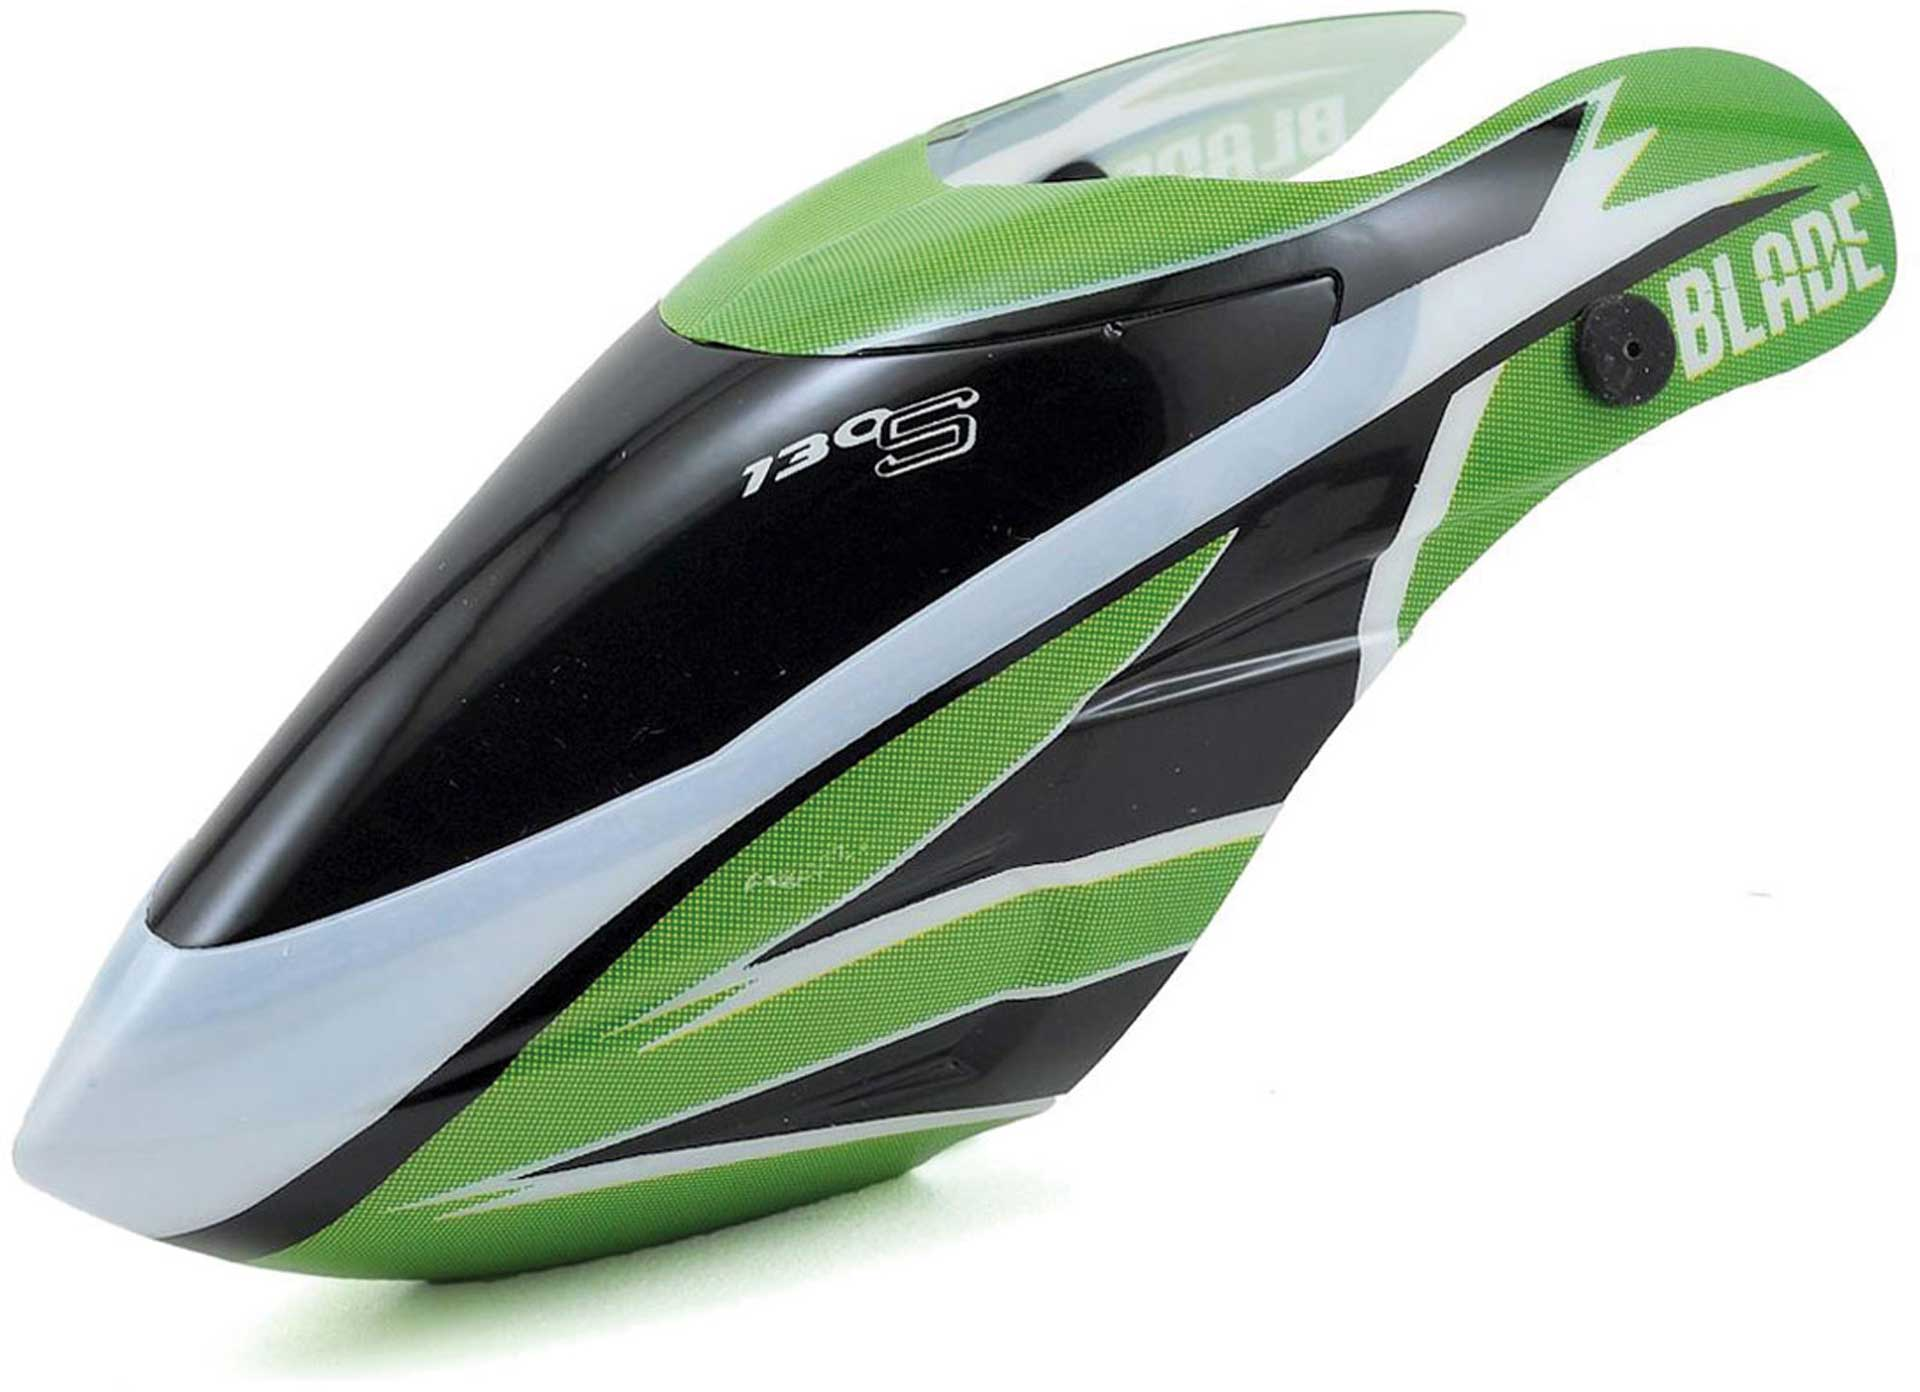 BLADE CANOPY GREEN 130 S